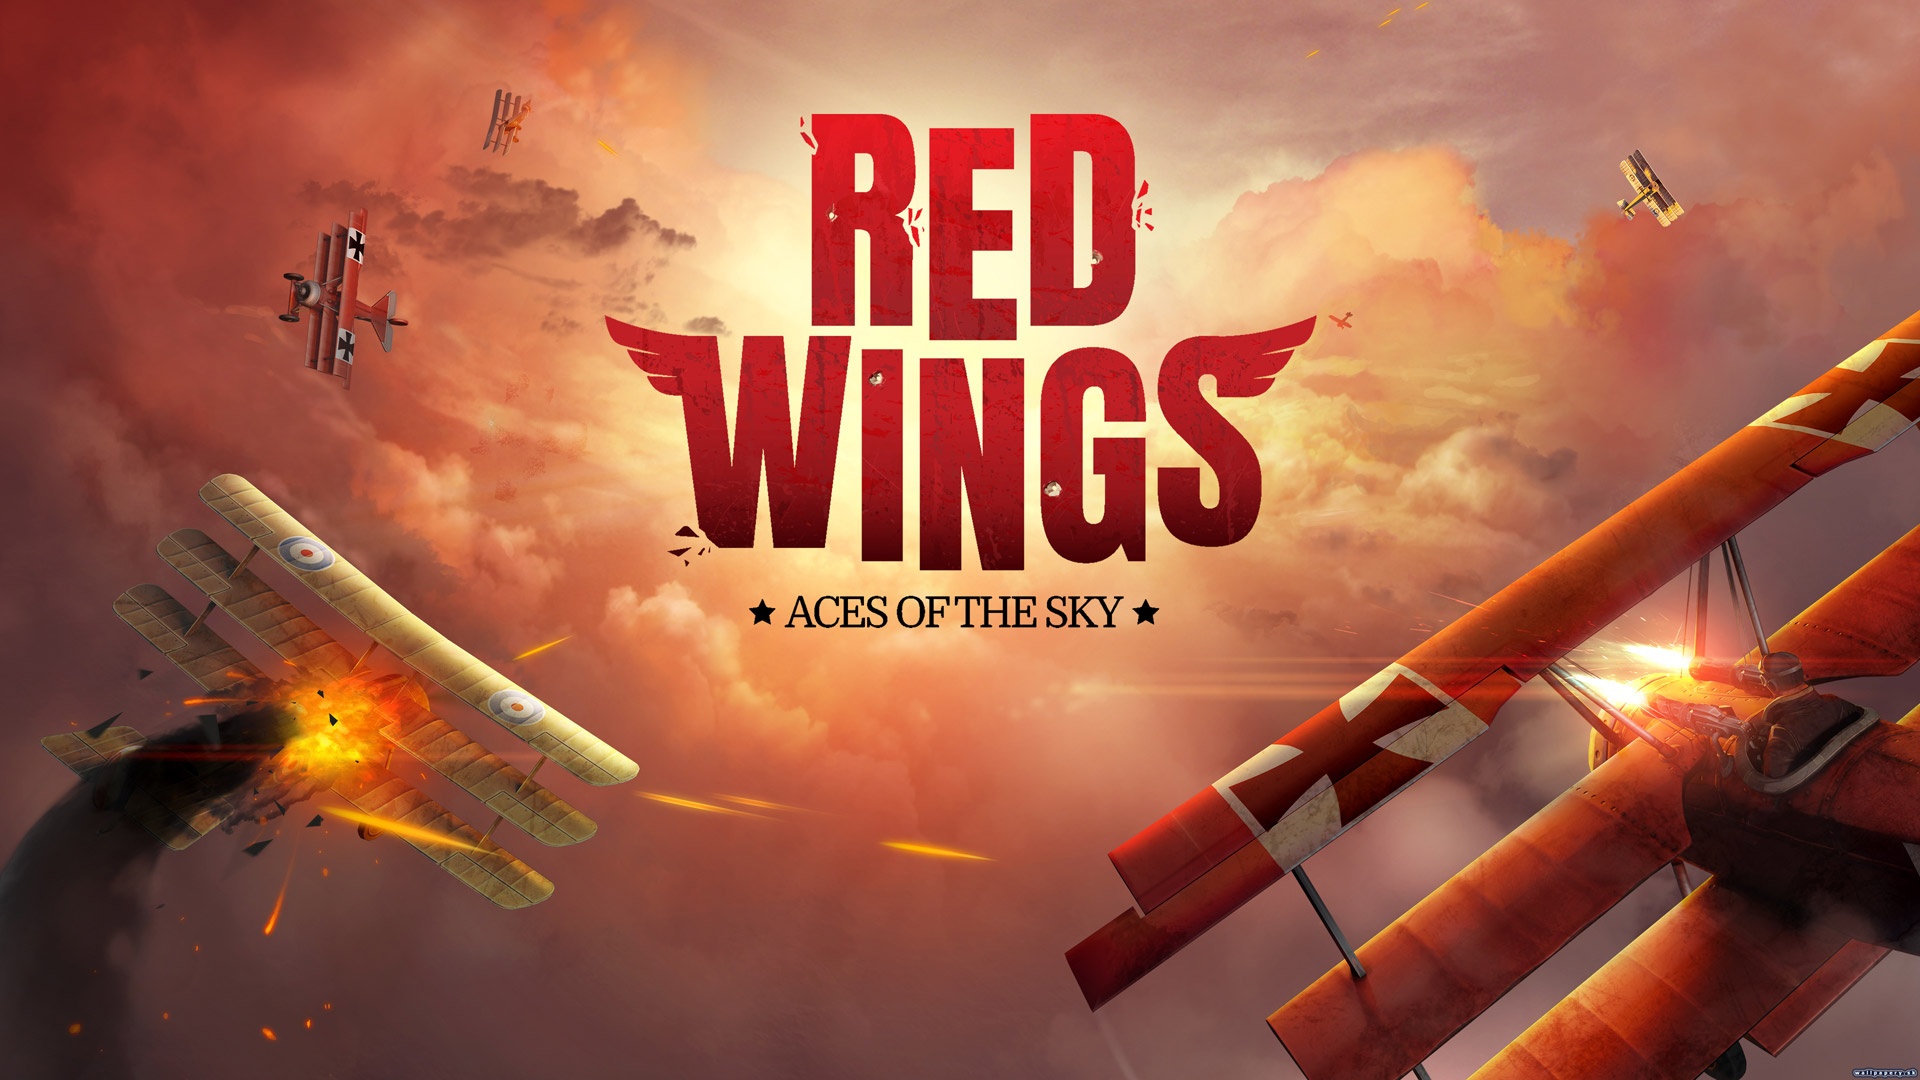 Free Red Wings: Aces of the Sky Wallpaper in 1920x1080